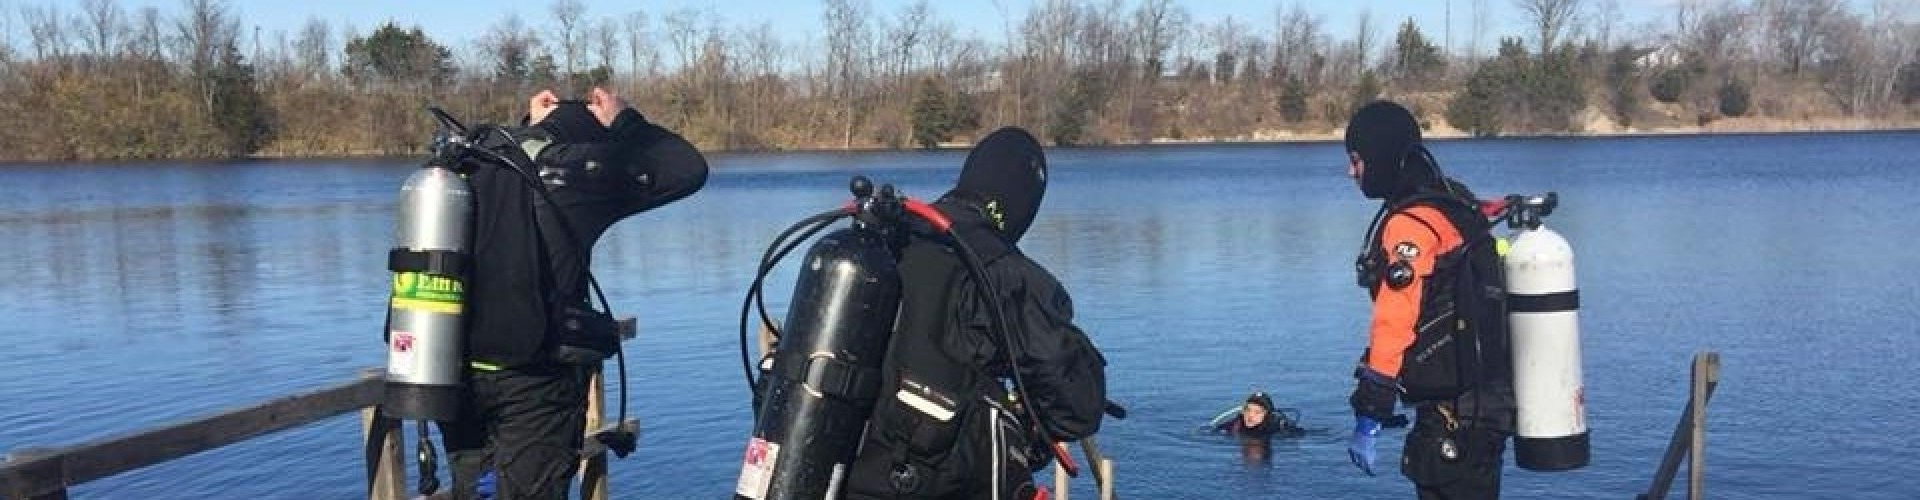 1 - Drysuit Divers @ Gilboa